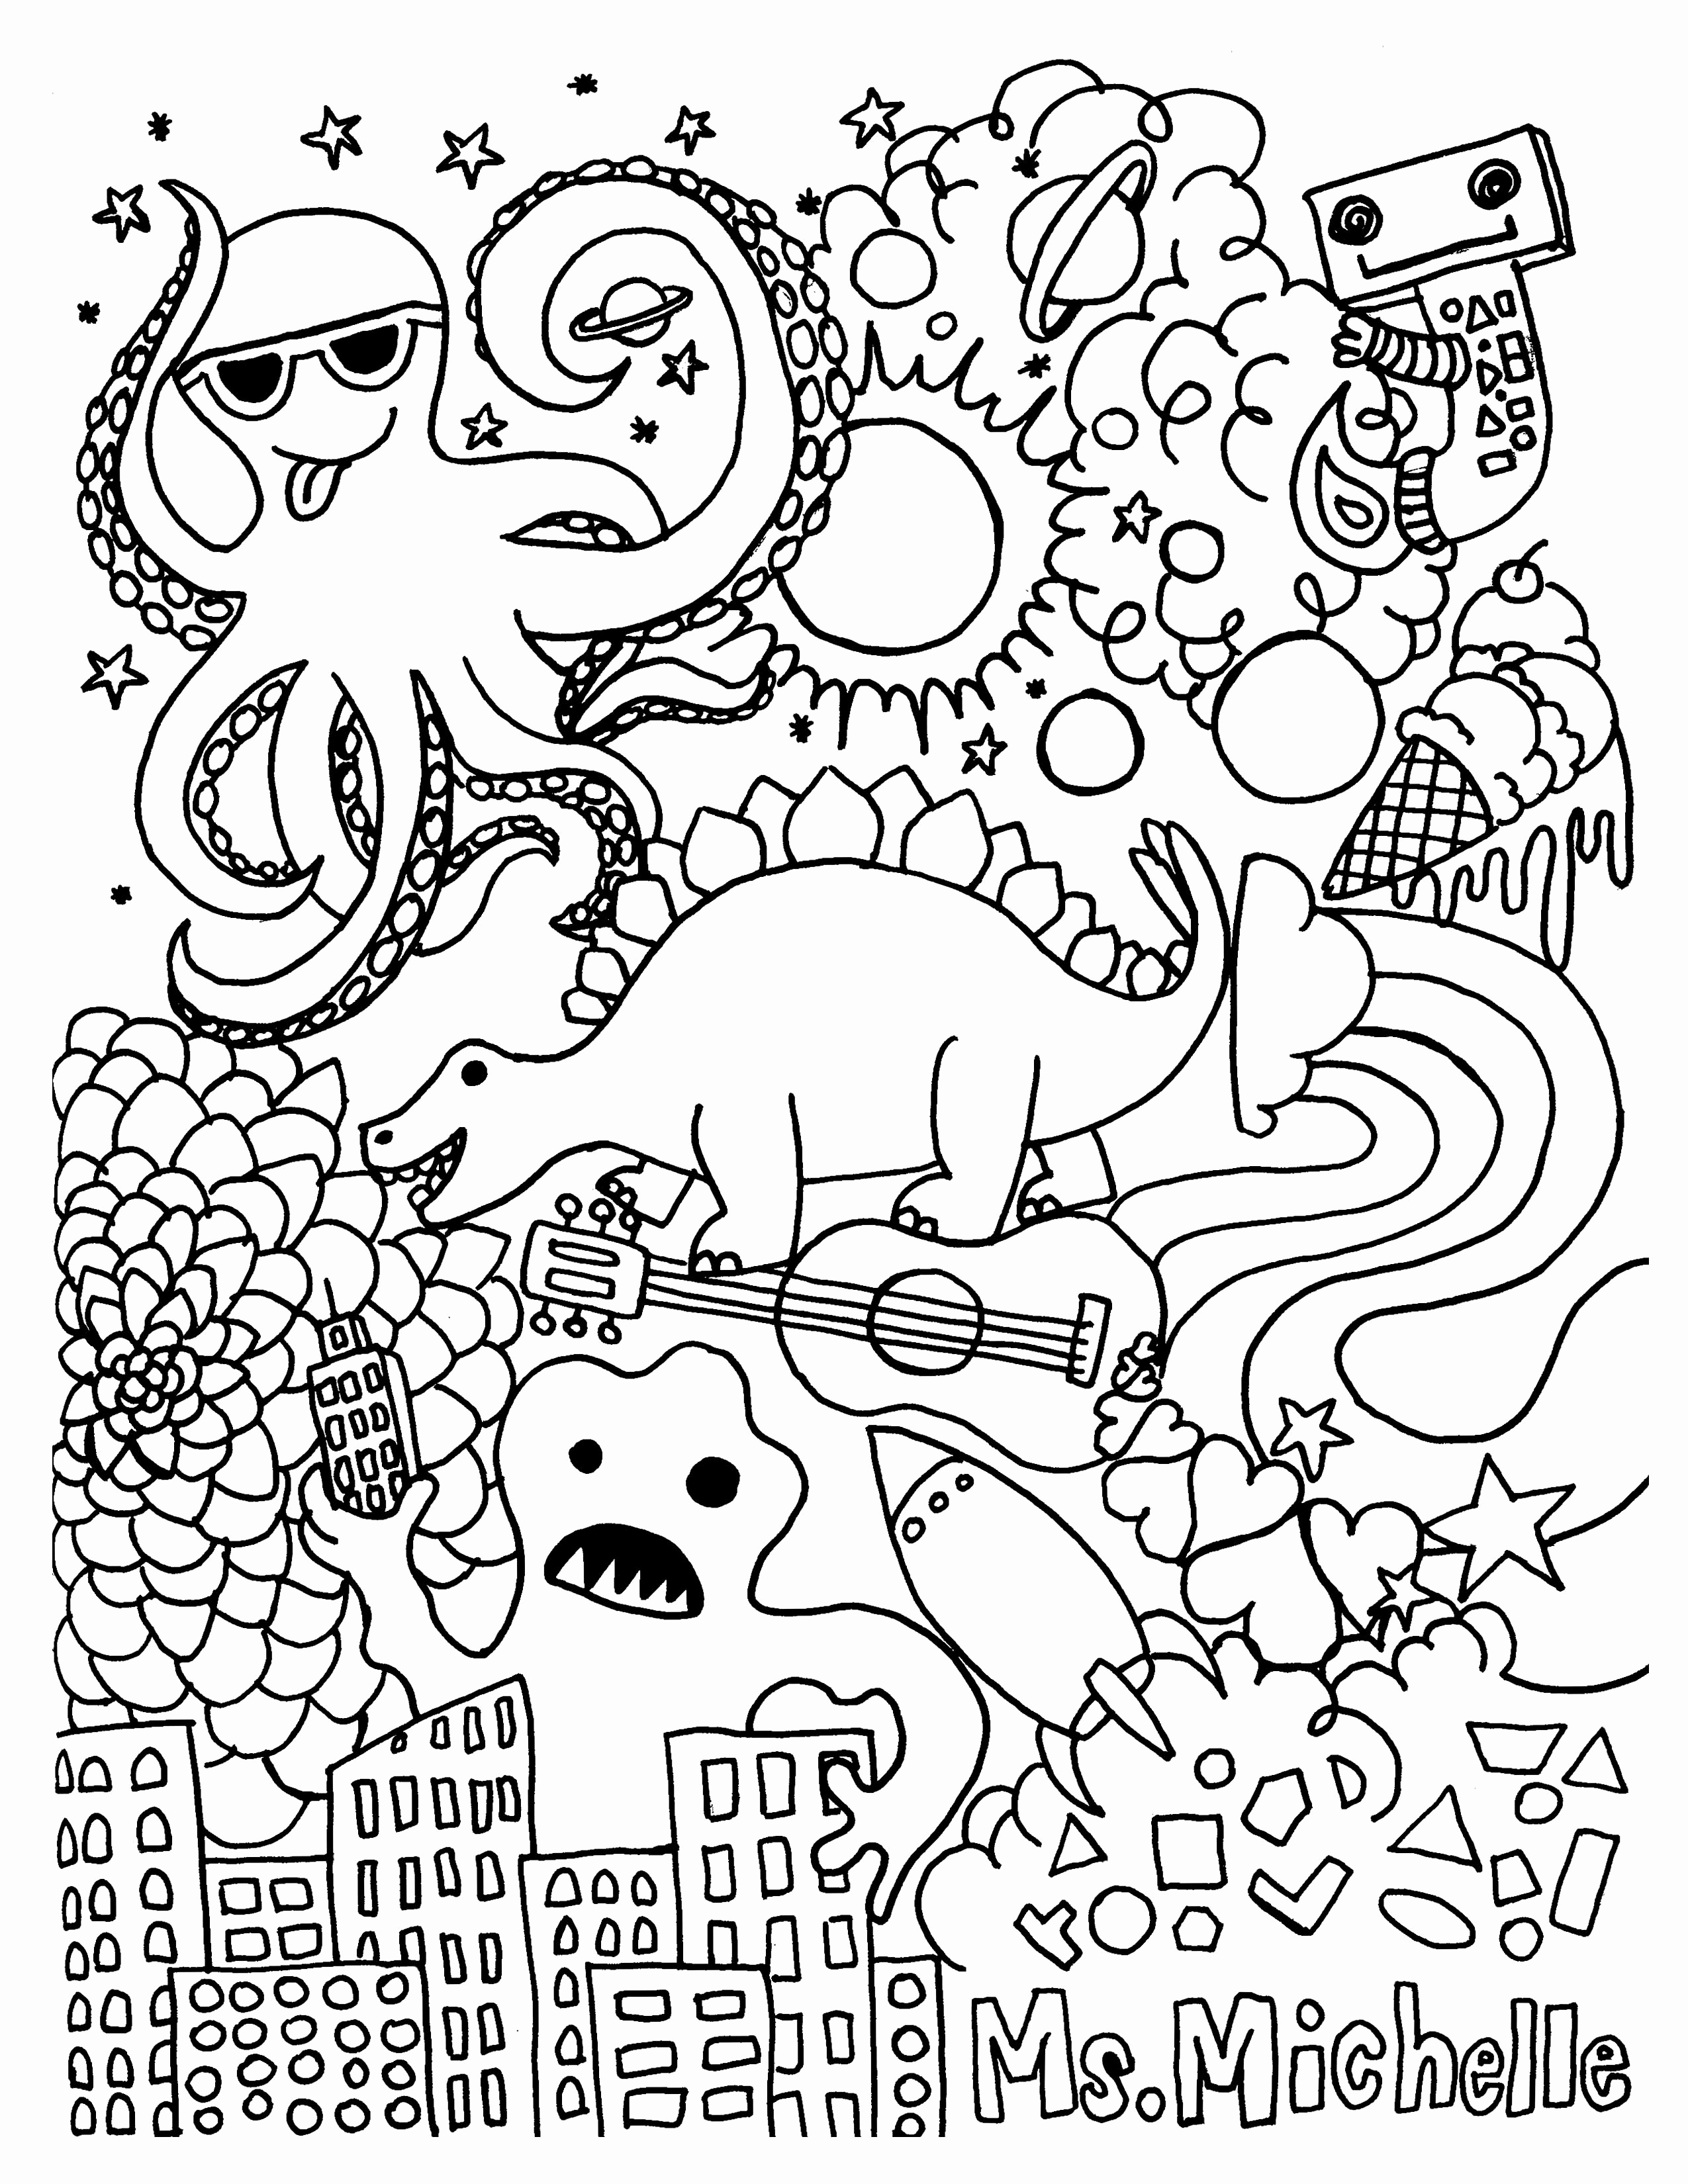 coloring sheets 3rd grade 3rd grade coloring pages free download on clipartmag 3rd grade coloring sheets